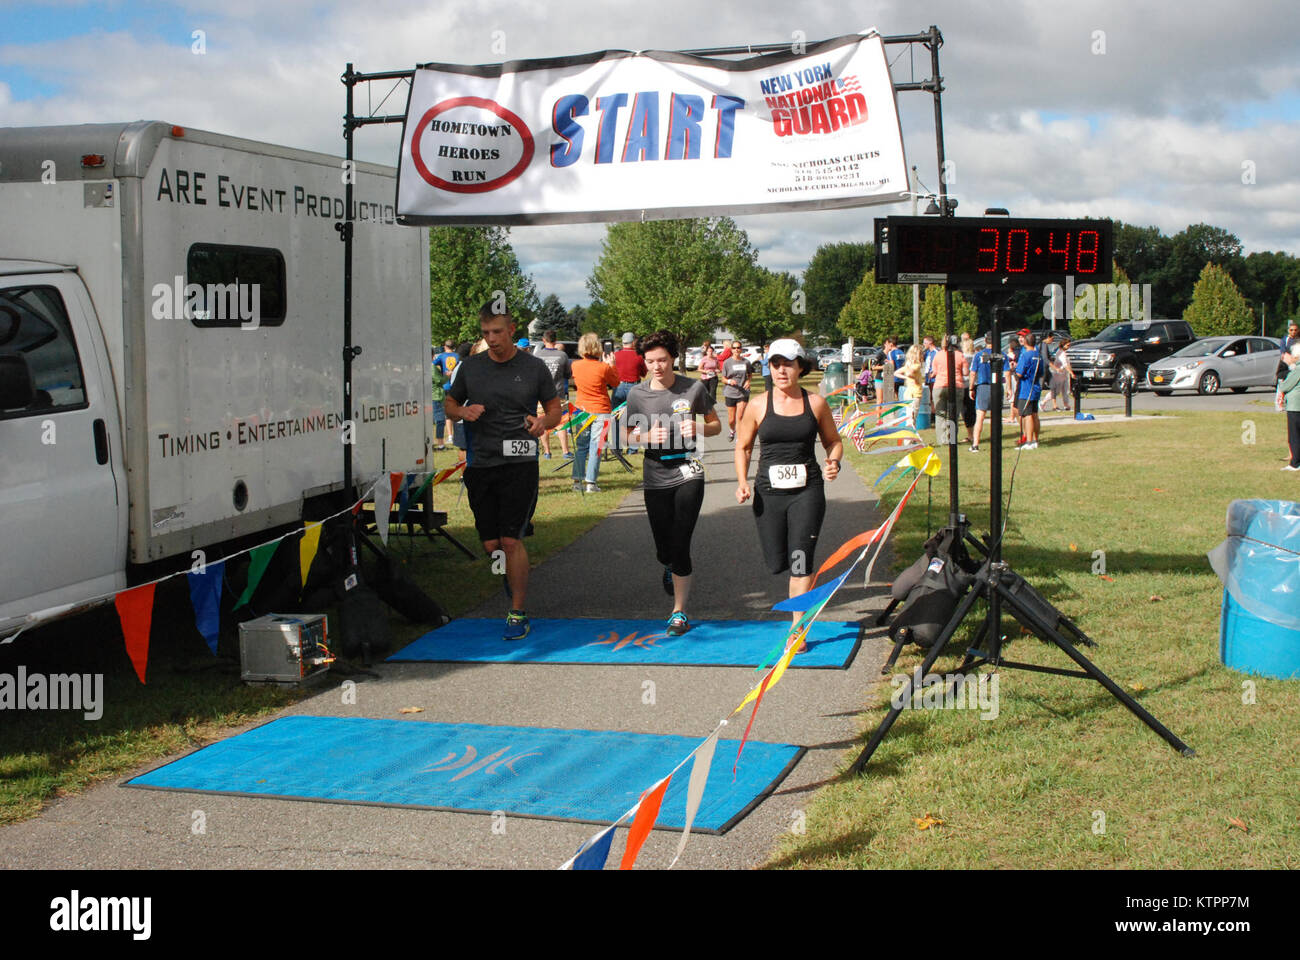 COLONIE, N.Y.- More than 150 runners participated in the New York National Guard Family Readiness Council's Home Stock Photo